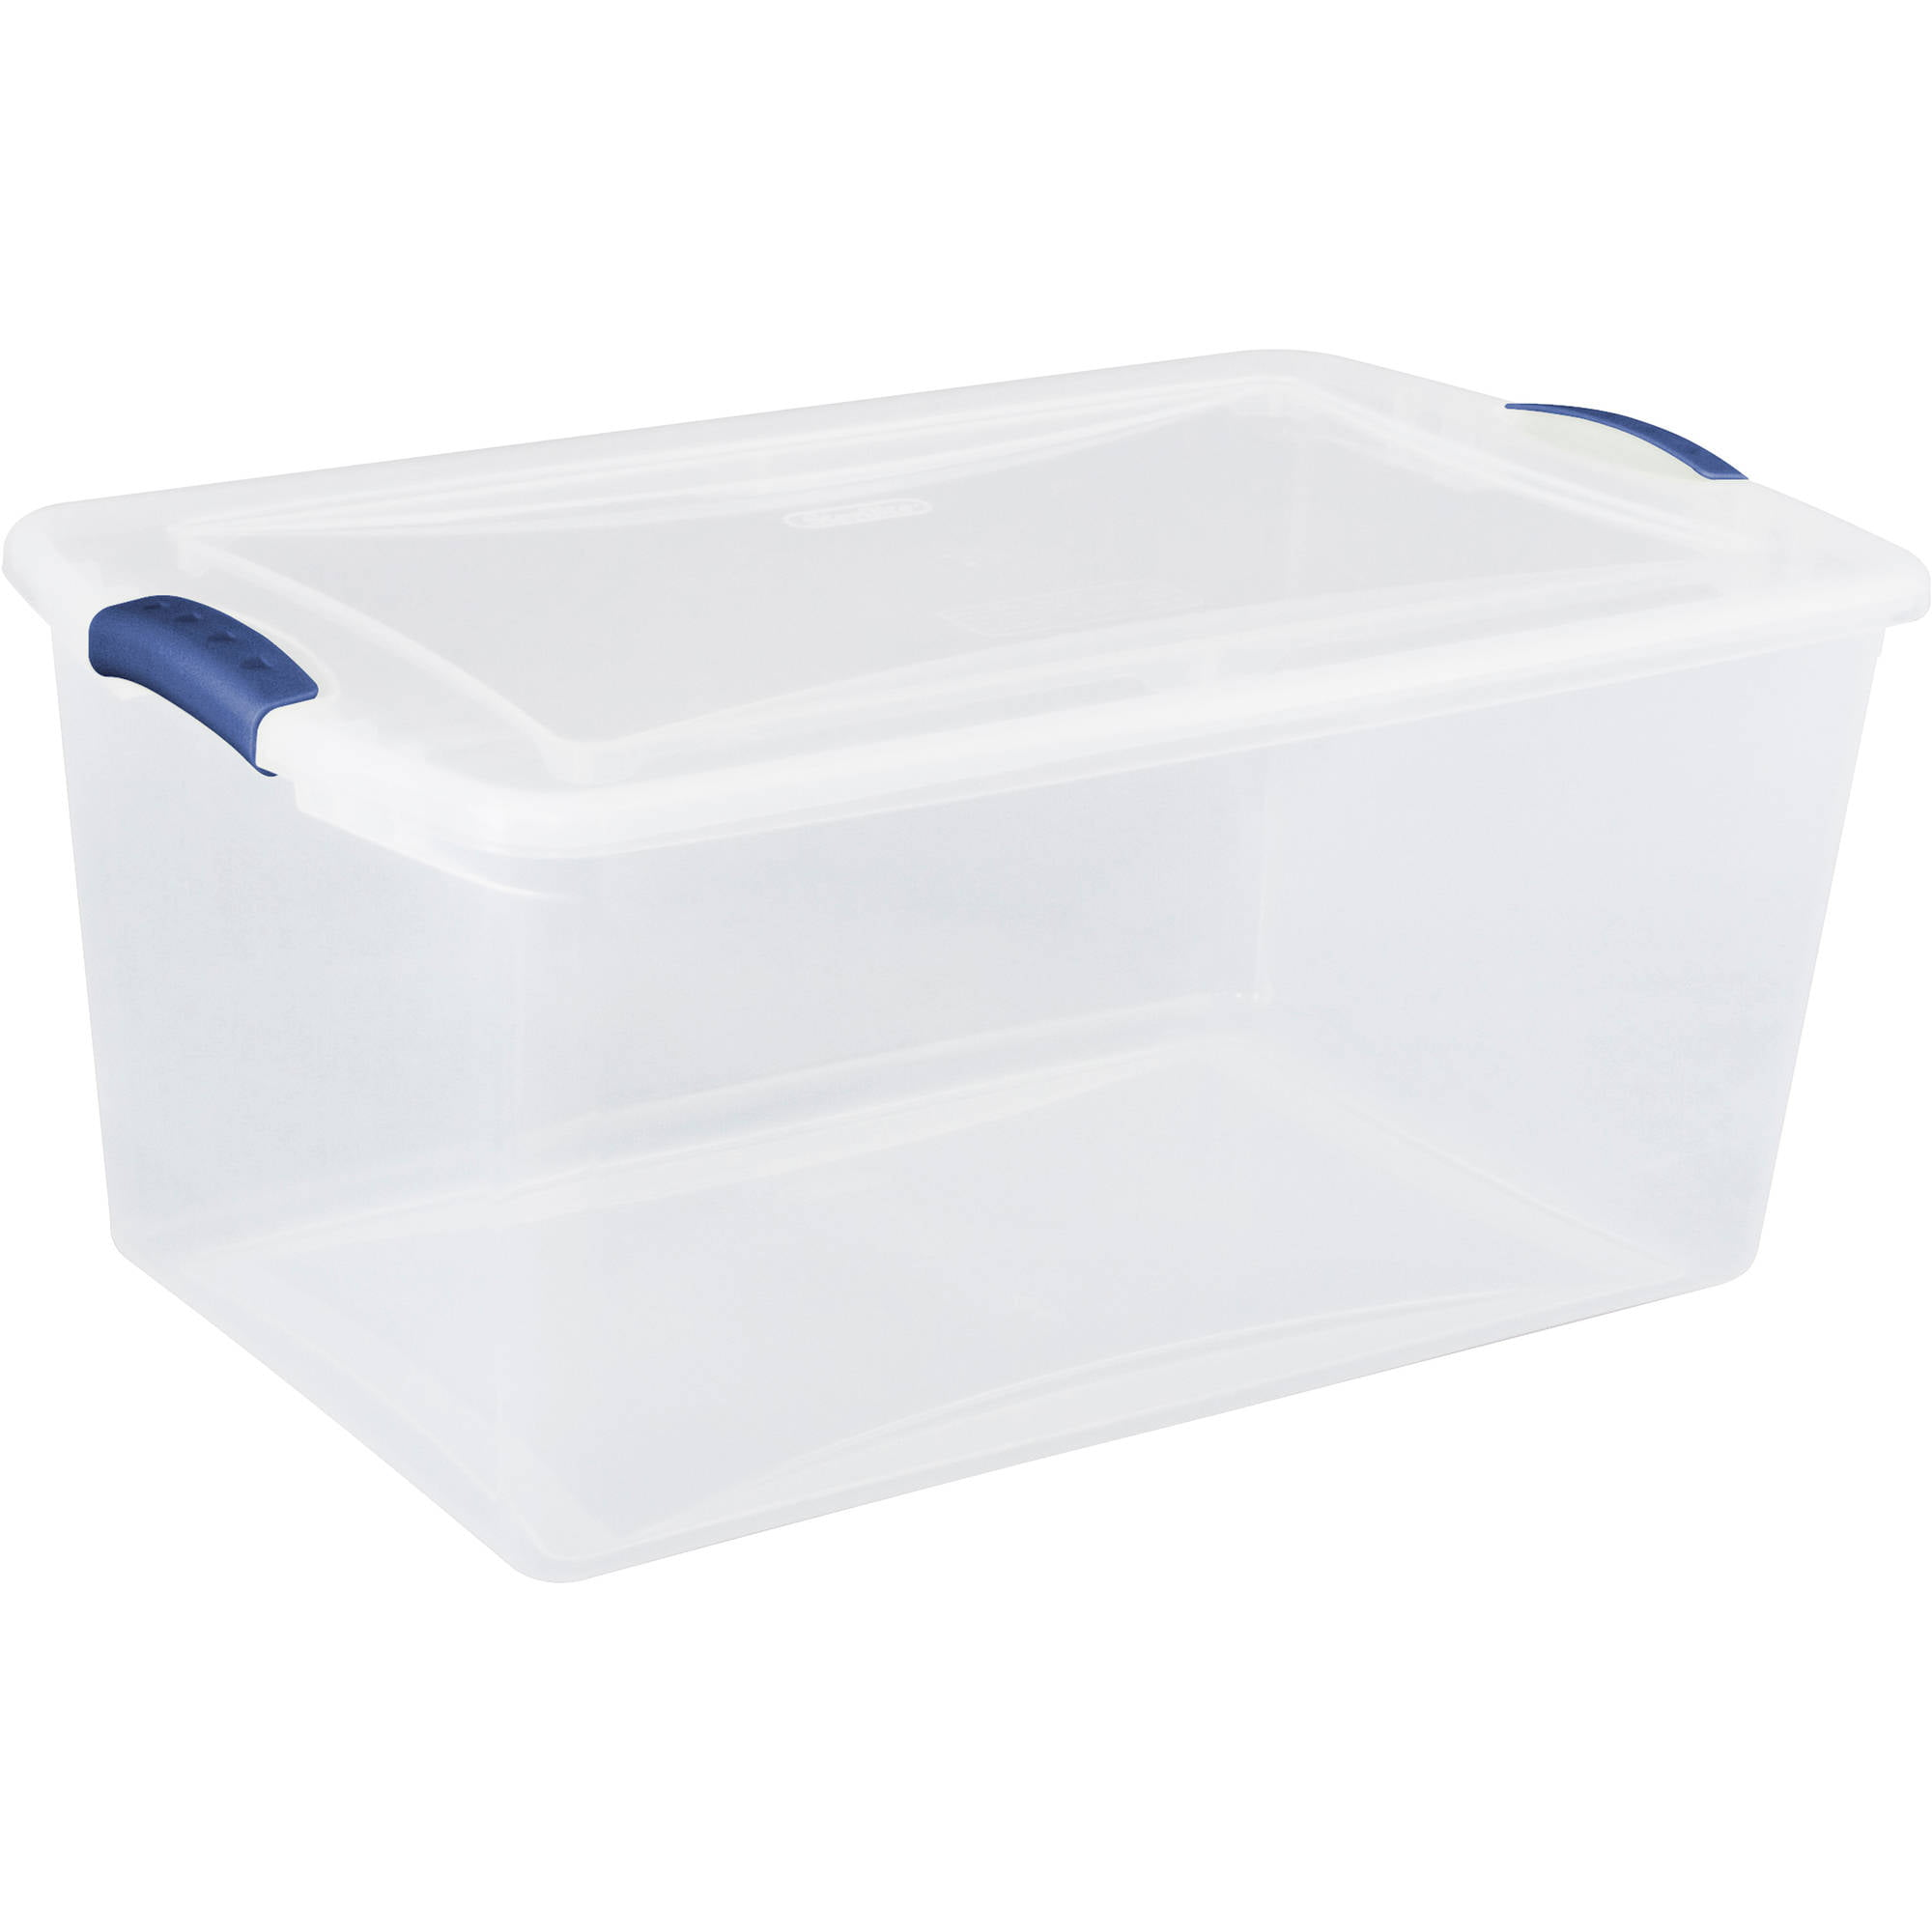 sterilite 66 quart latch box blue eclipse walmart